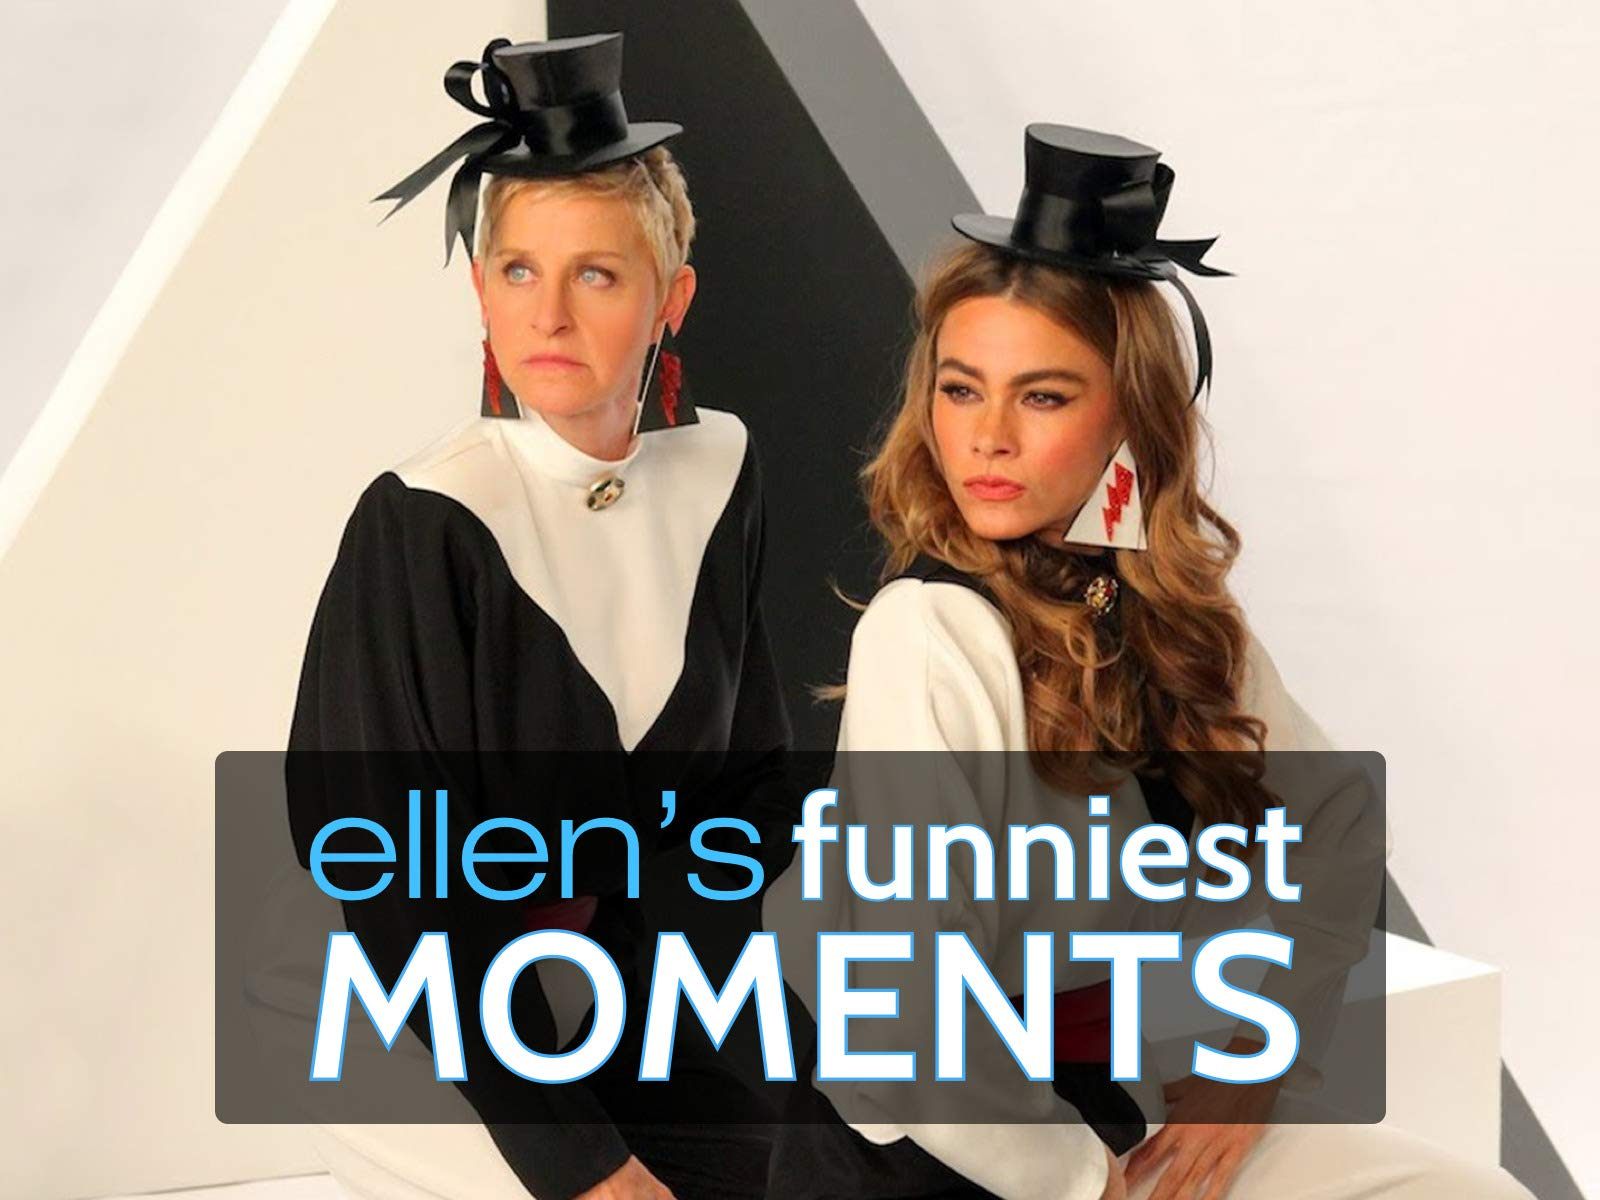 Ellen's Funniest Moments - Season 1